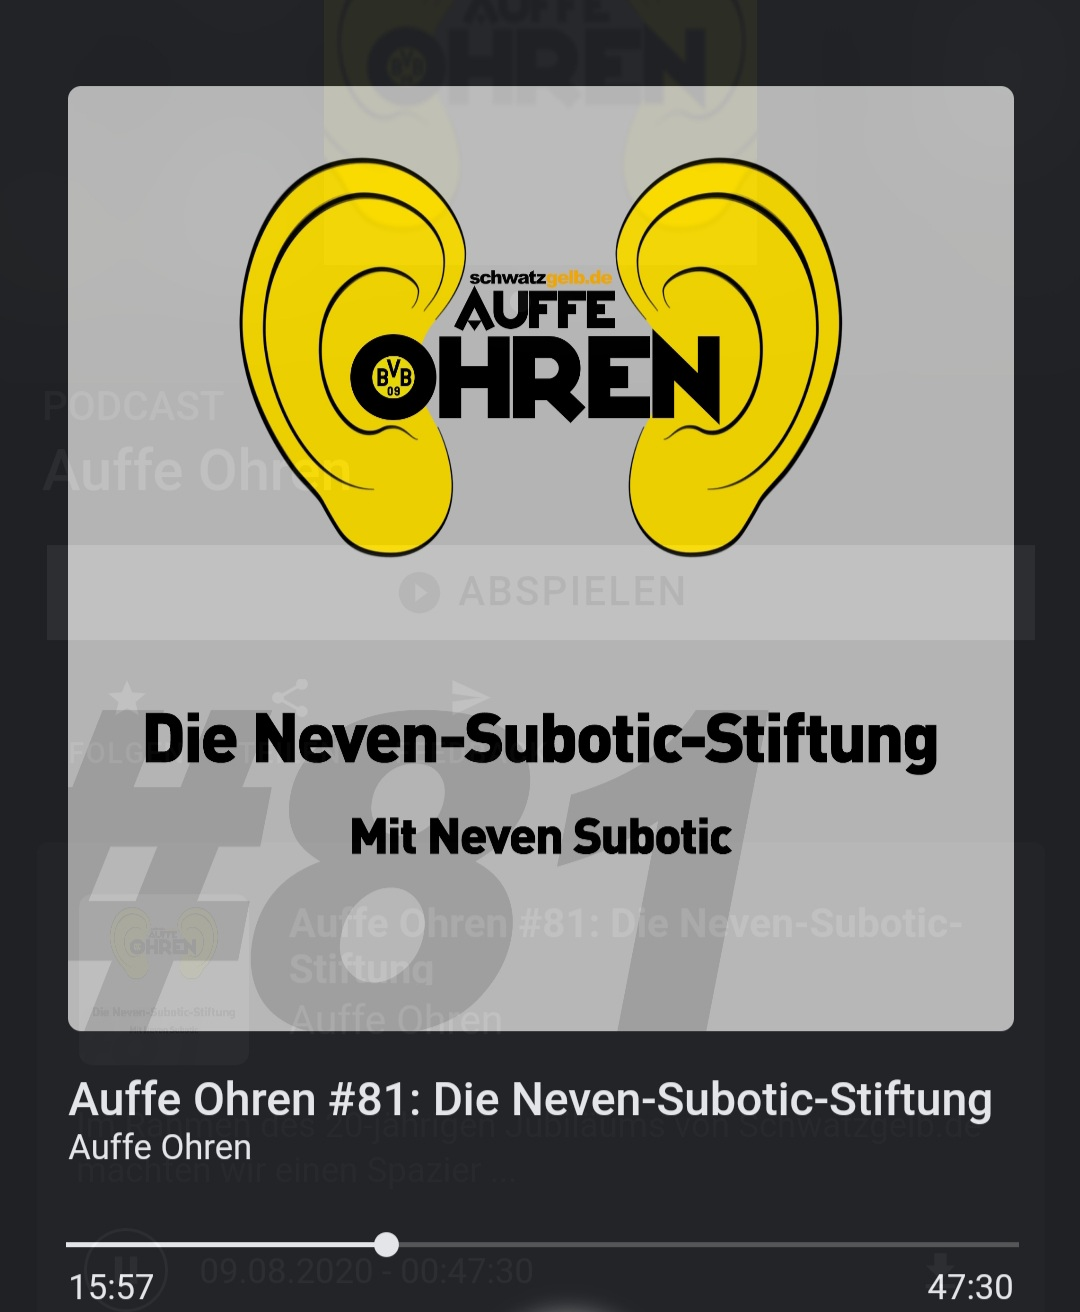 Neven Subotic im Podcast über die Neven-Subotic-Stiftung